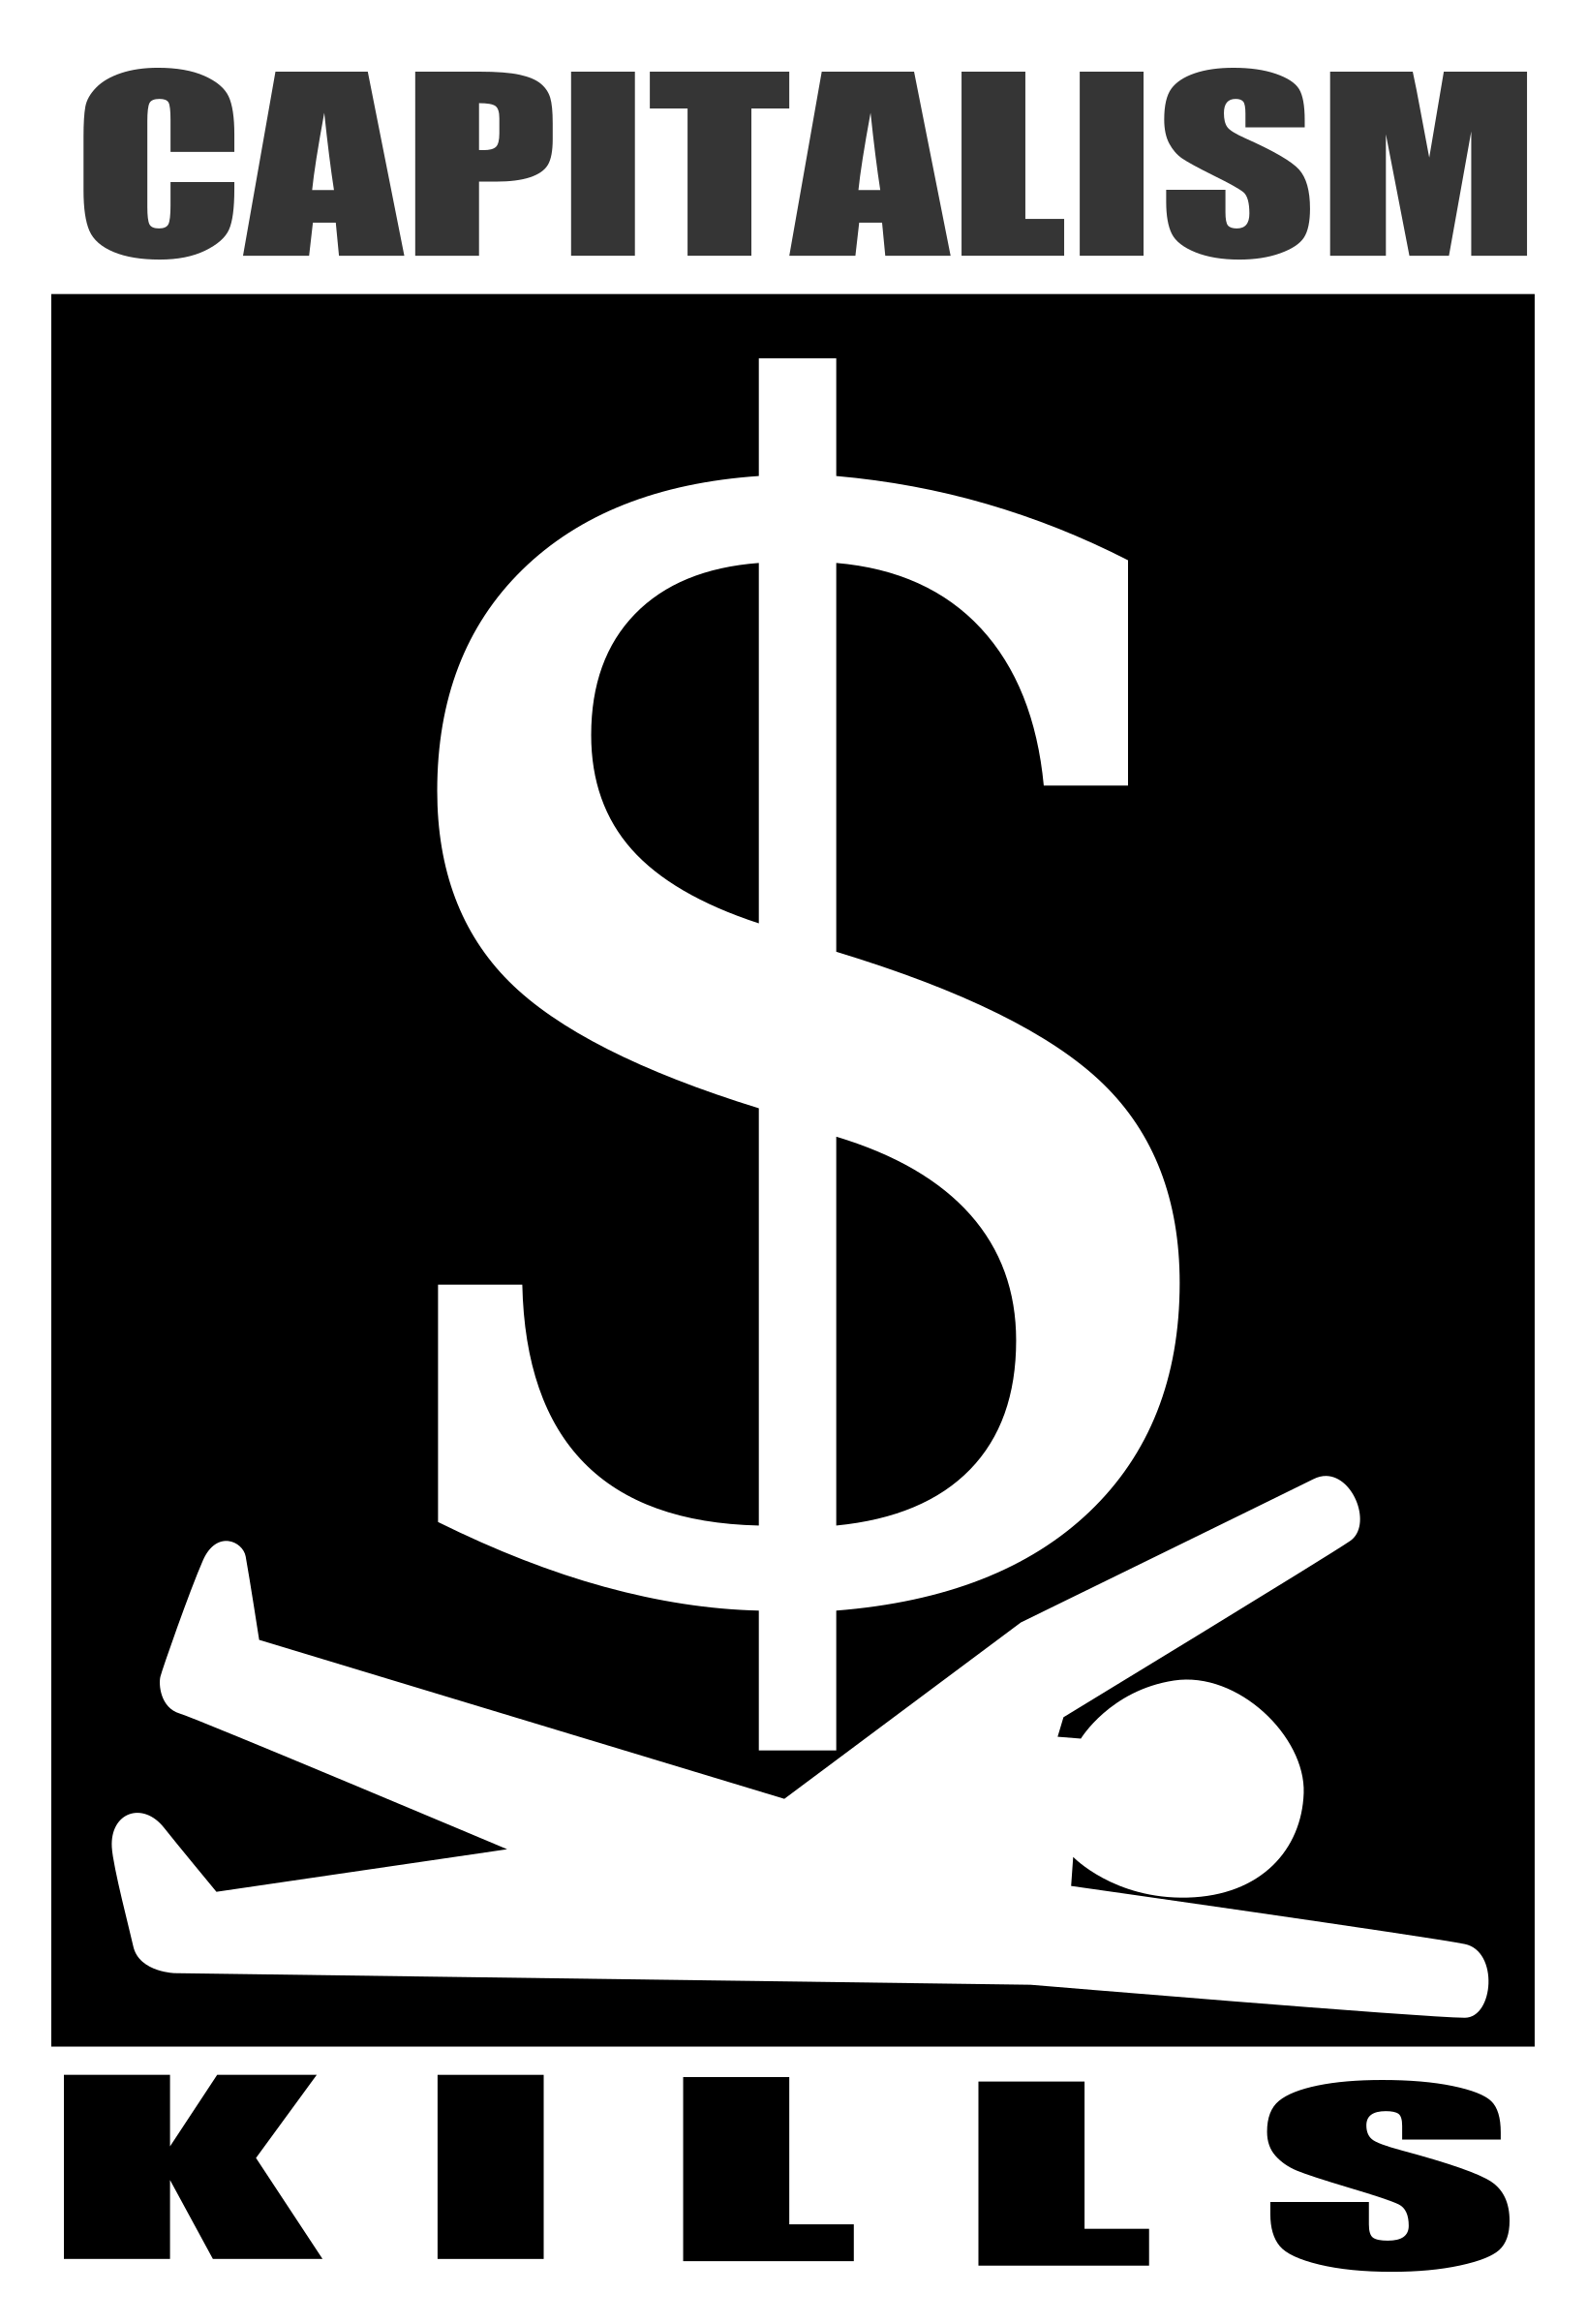 Free Capitalism Cliparts Download Free Clip Art Free